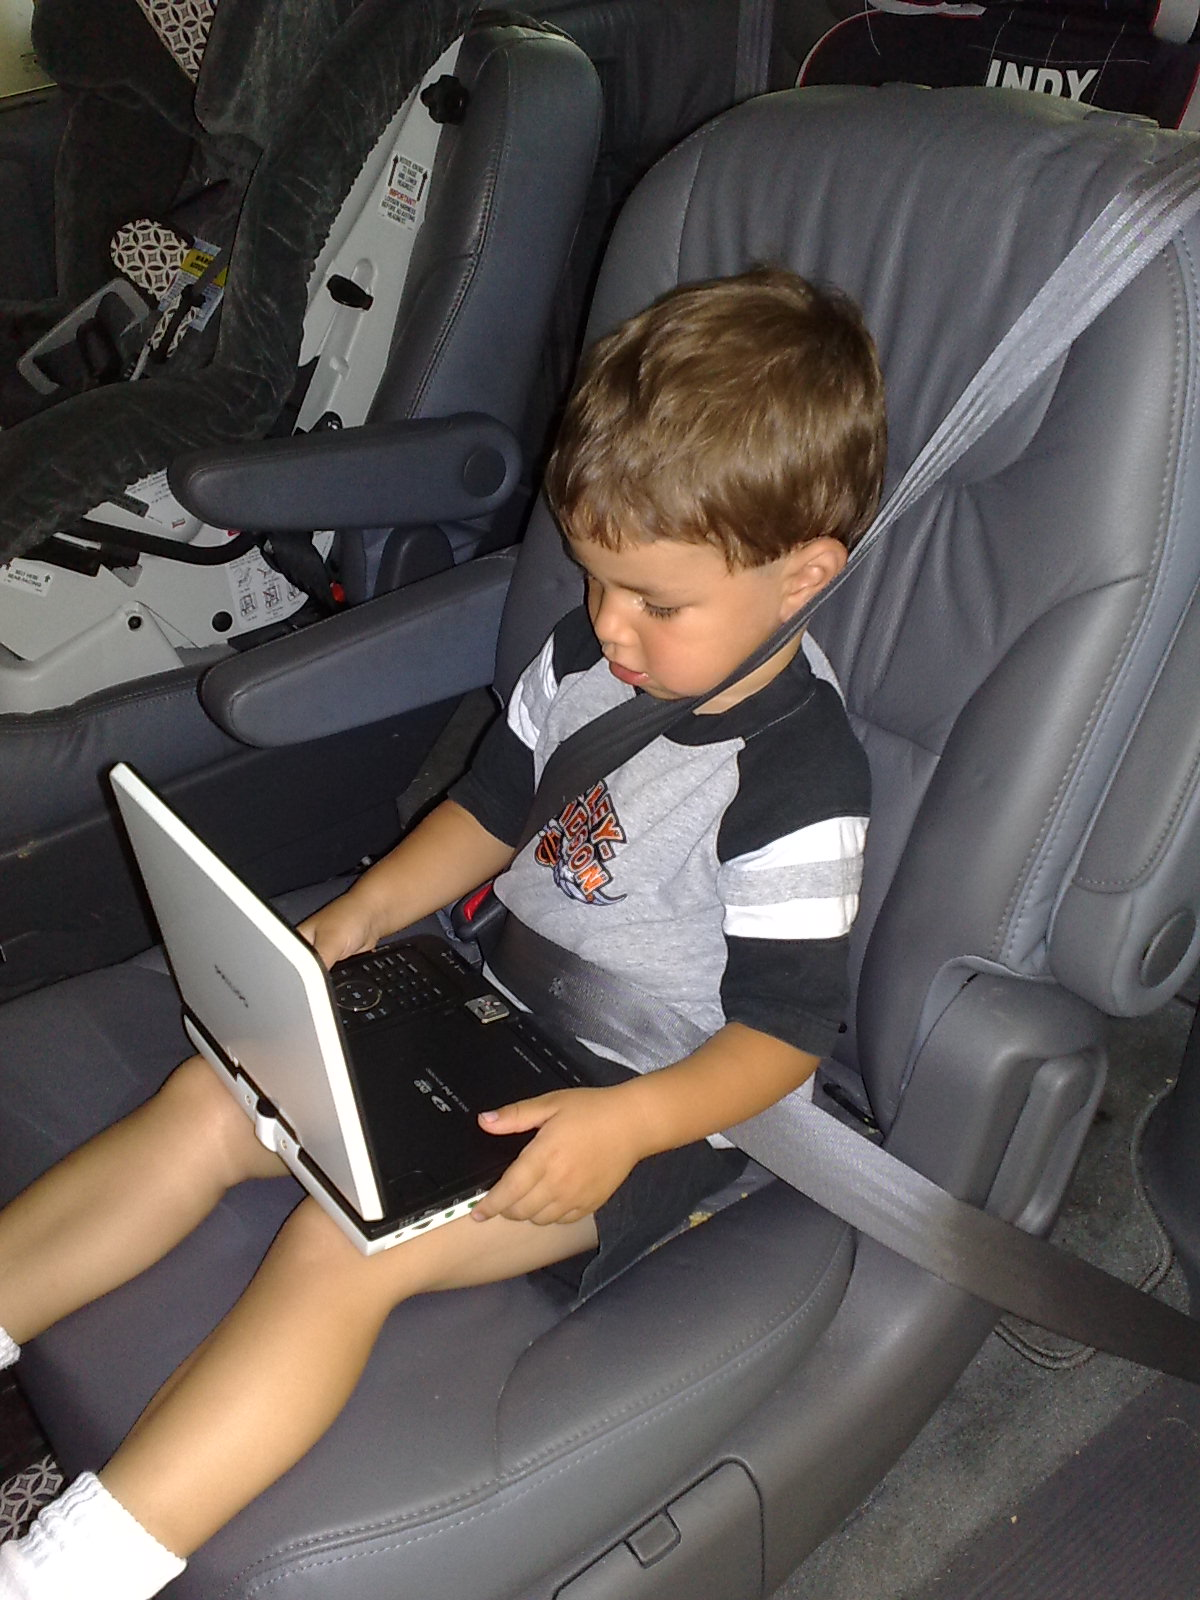 Child Safety Seat 3 Year Old The Never Ending Debate Carseats Vs Seatbelts – Carseatblog